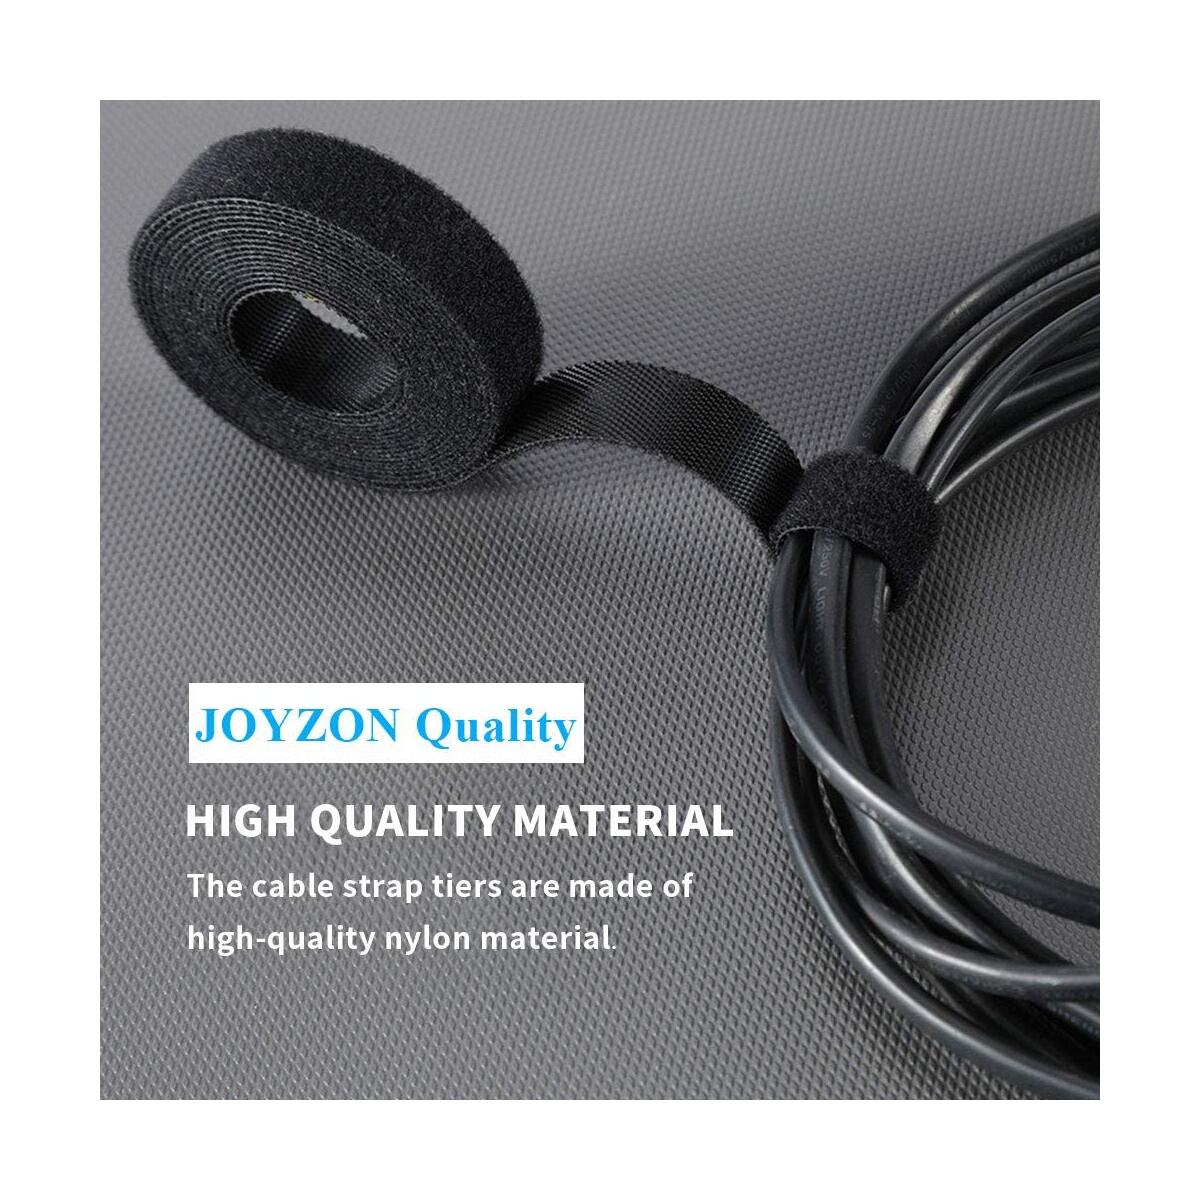 JOYZON Cable Organizer 16.6 ft x 3 Roll Reusable Cable Straps Cable Clips Cable Ties Hook & Black Organizing Cord Organizer Cable Management Loop Nylon Fastening Tape Wire Organizer for Home, Office